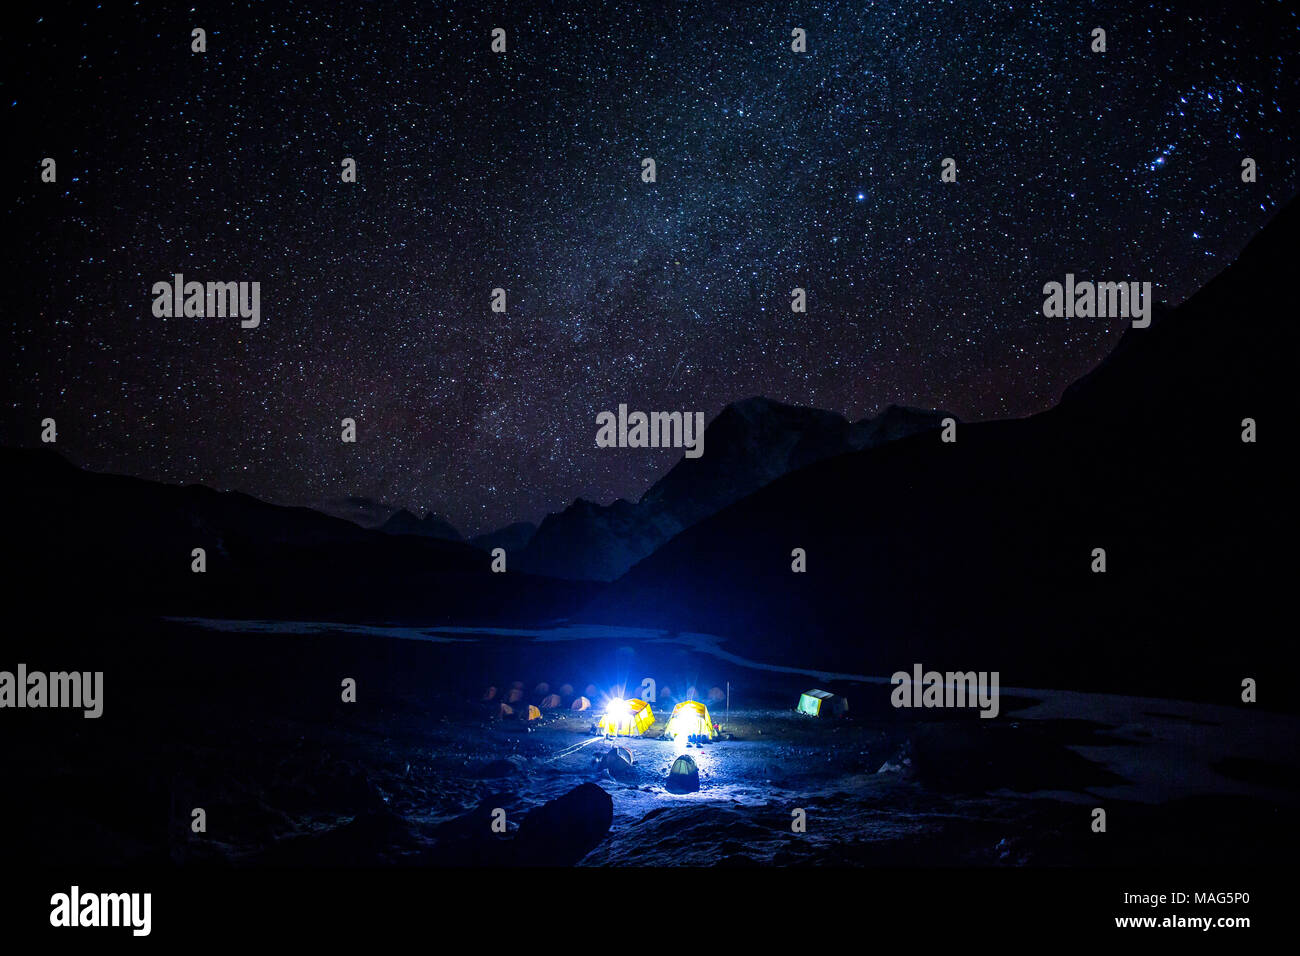 A stunning view of stars and Milky Way galaxy above a campsite near base camp Everest, Nepal - Stock Image